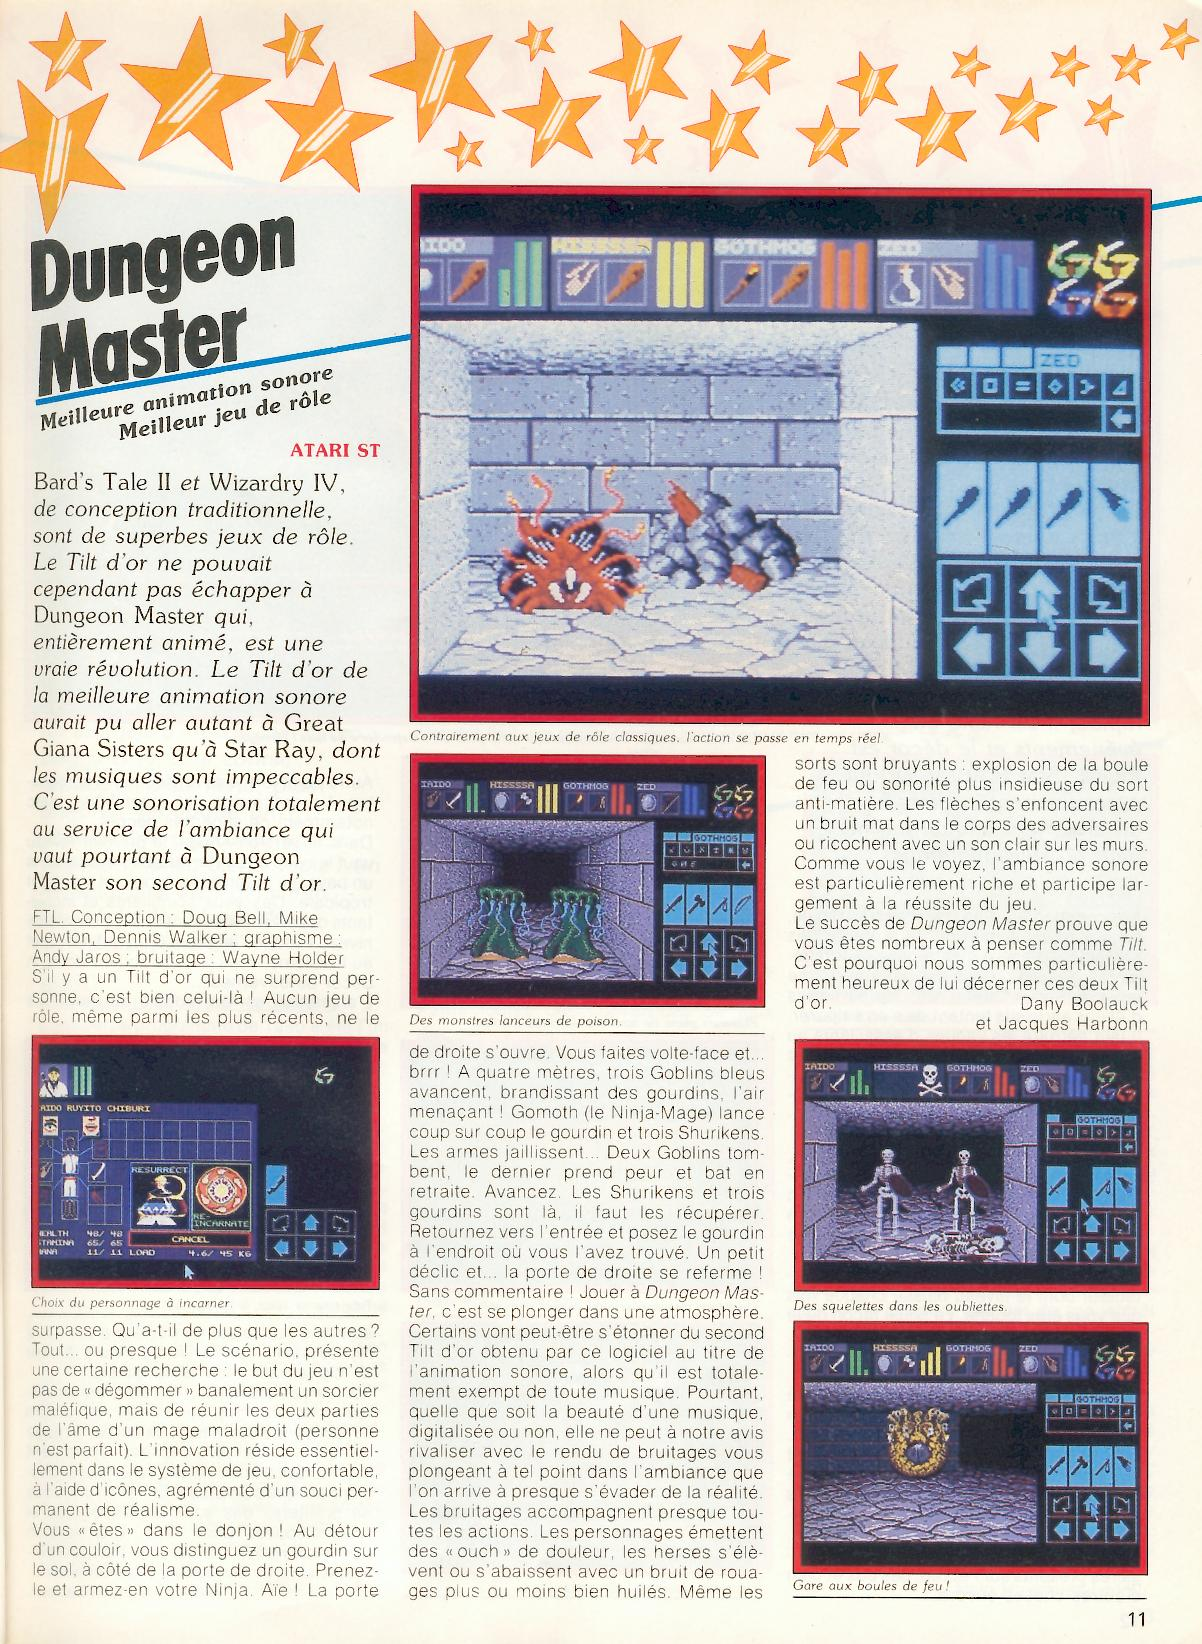 Dungeon Master for Atari ST Article published in French magazine 'Tilt', Issue #60 December 1988, Page 11